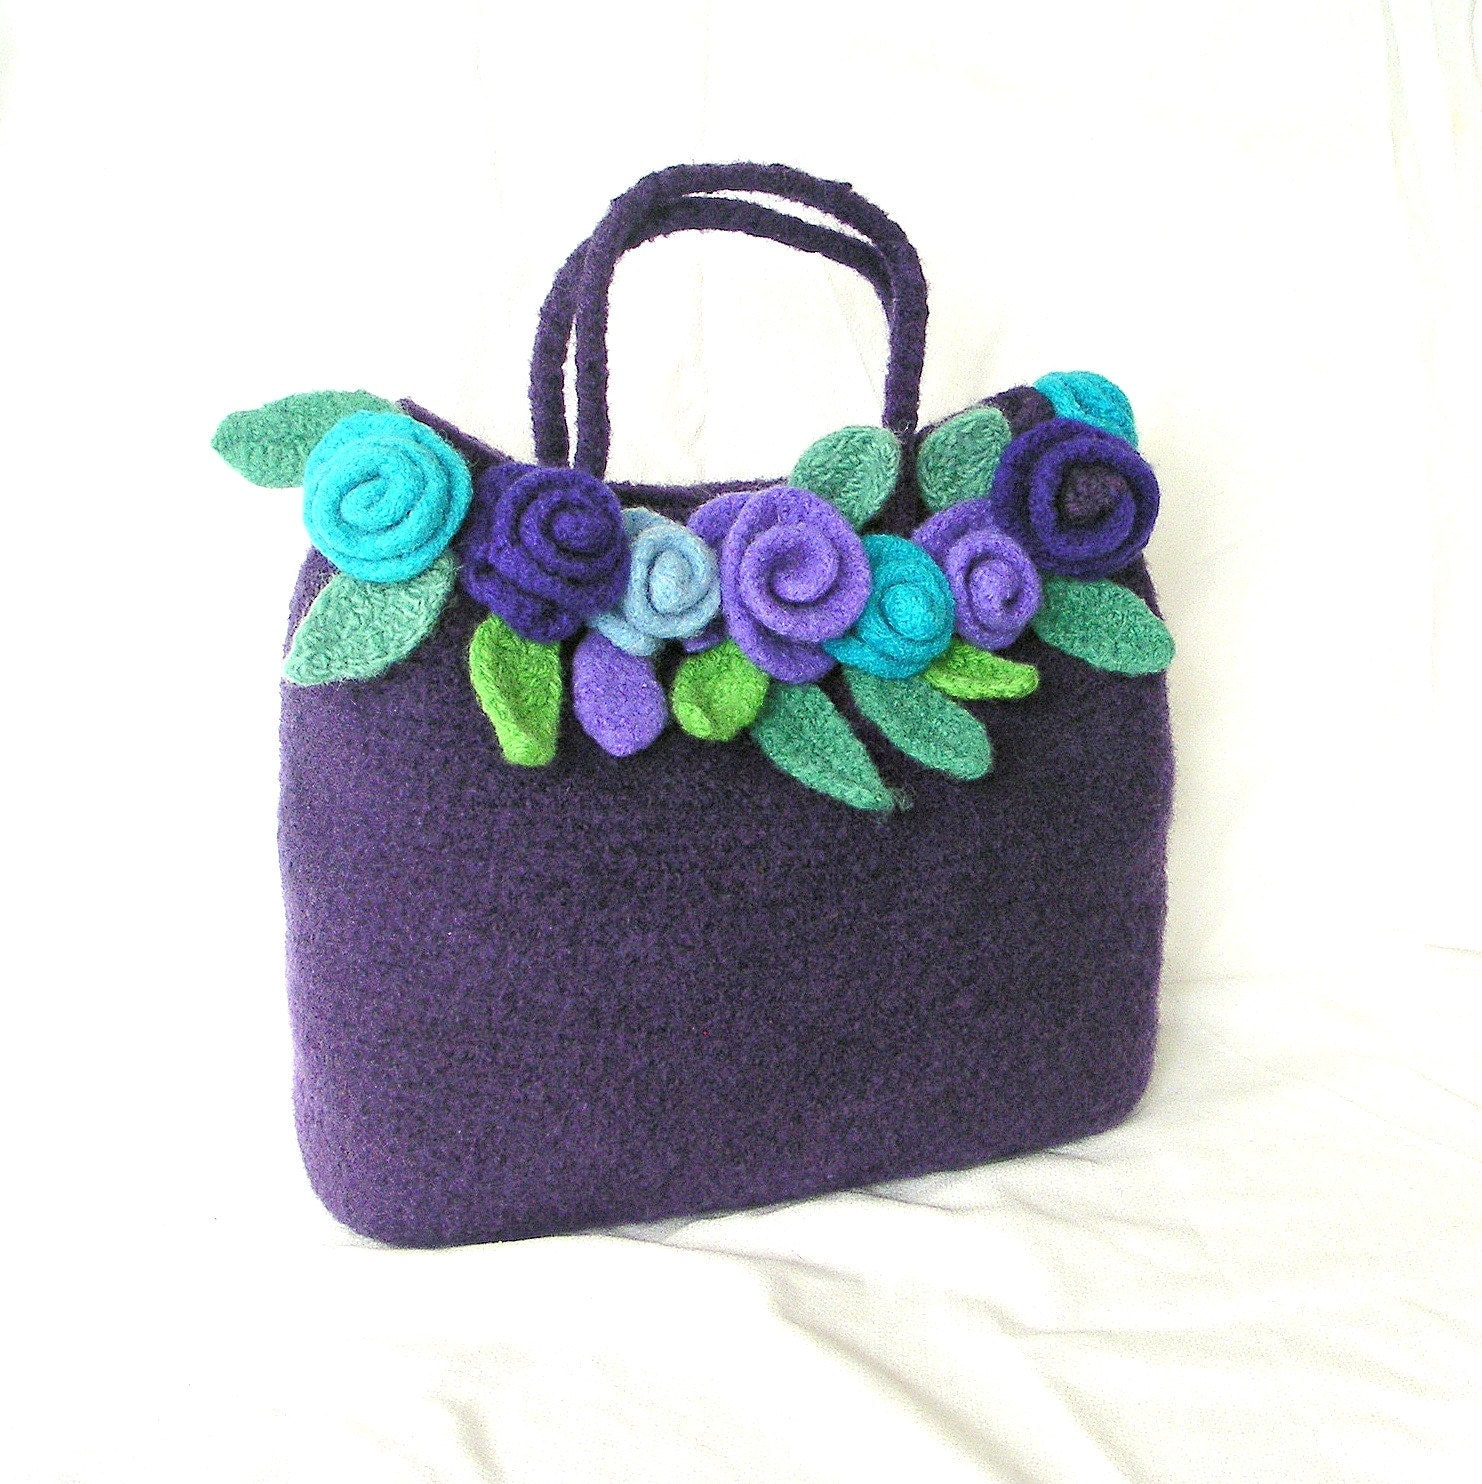 Crochet Bag Pattern Pdf : Pin Felt Rose Bag Crochet Pattern Tutorial Pdf Felted Flower on ...